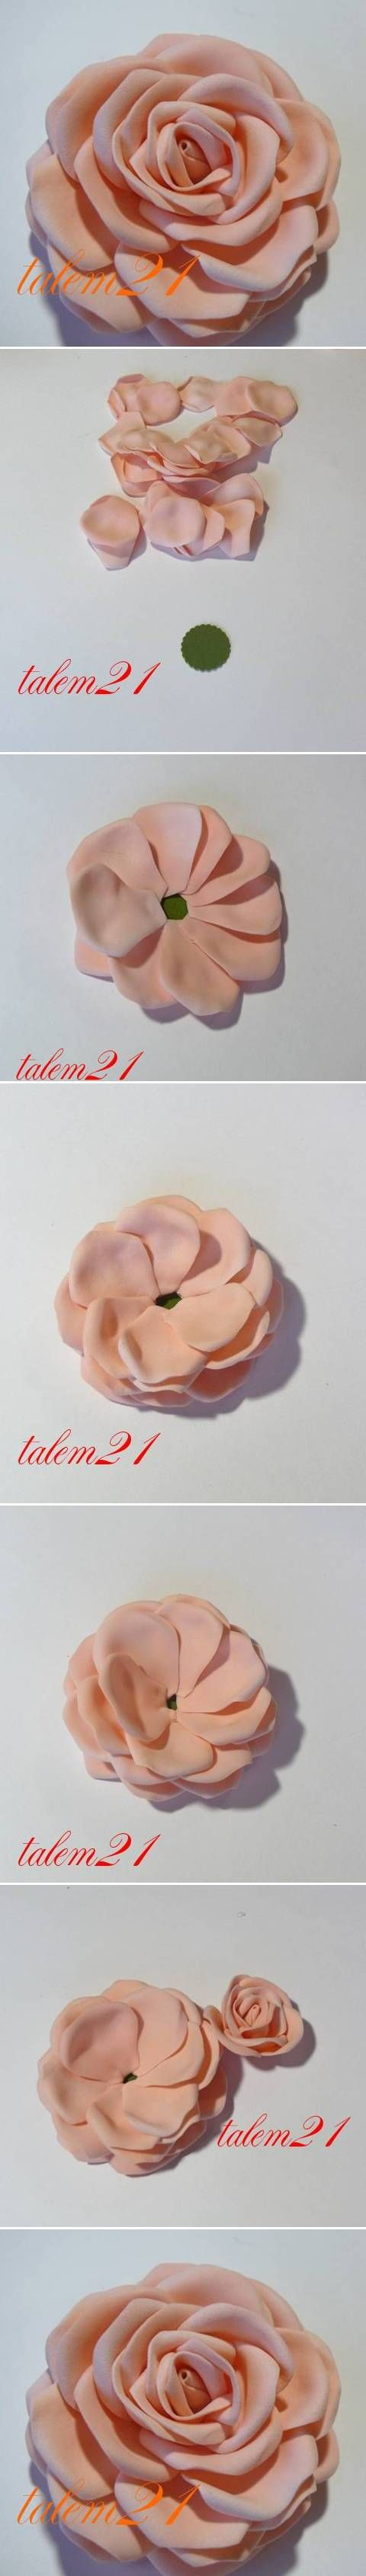 DIY Quick Modular Rose DIY Projects | UsefulDIY.com Follow Us on Facebook ==> http://www.facebook.com/UsefulDiy